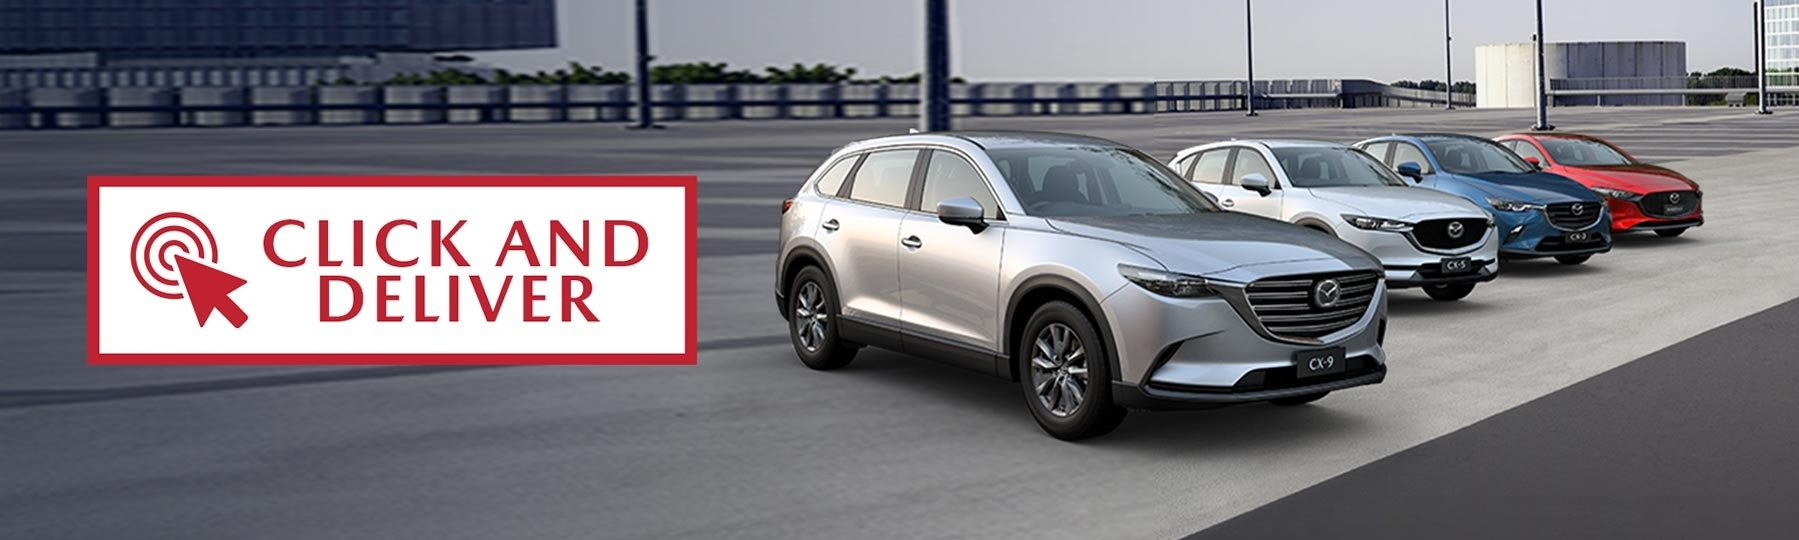 Wyong Mazda - Click and Deliver